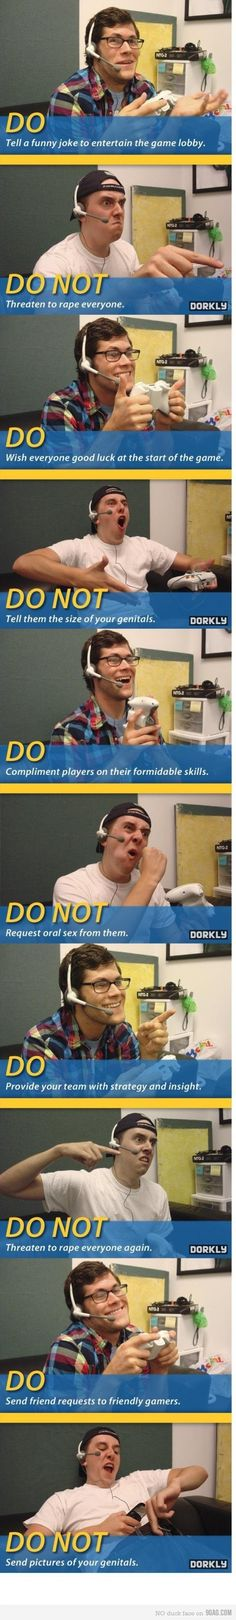 Just some online game rules  I lol'd